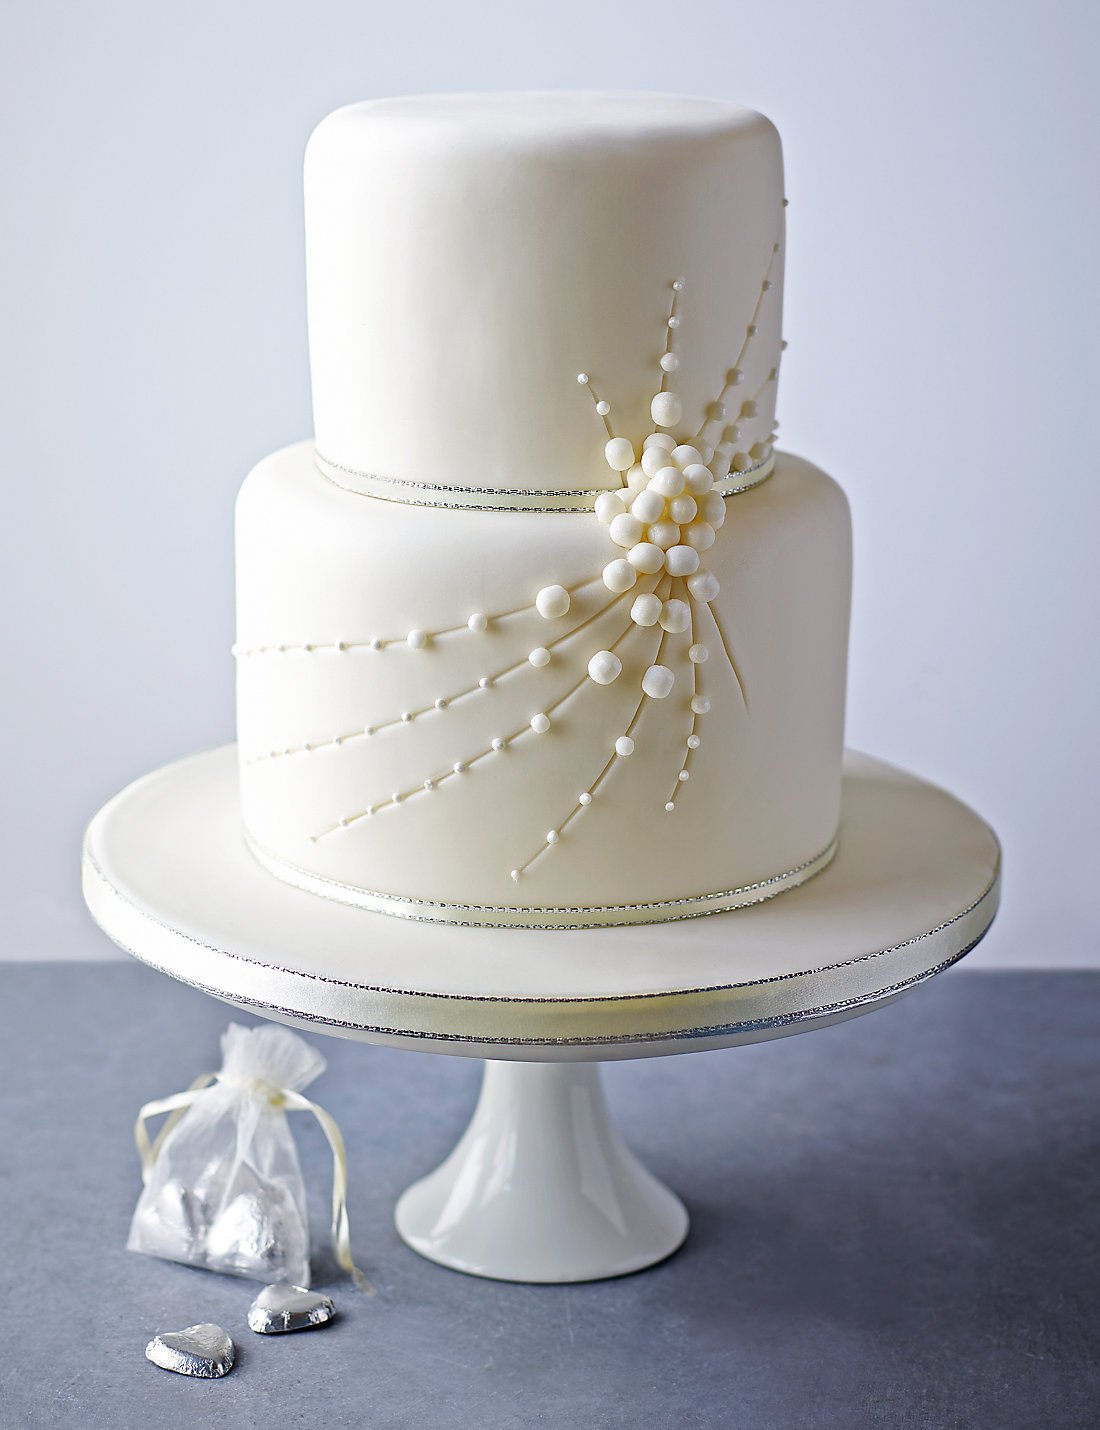 Contemporary Marks Wedding Cake Ensign - The Wedding Ideas ...